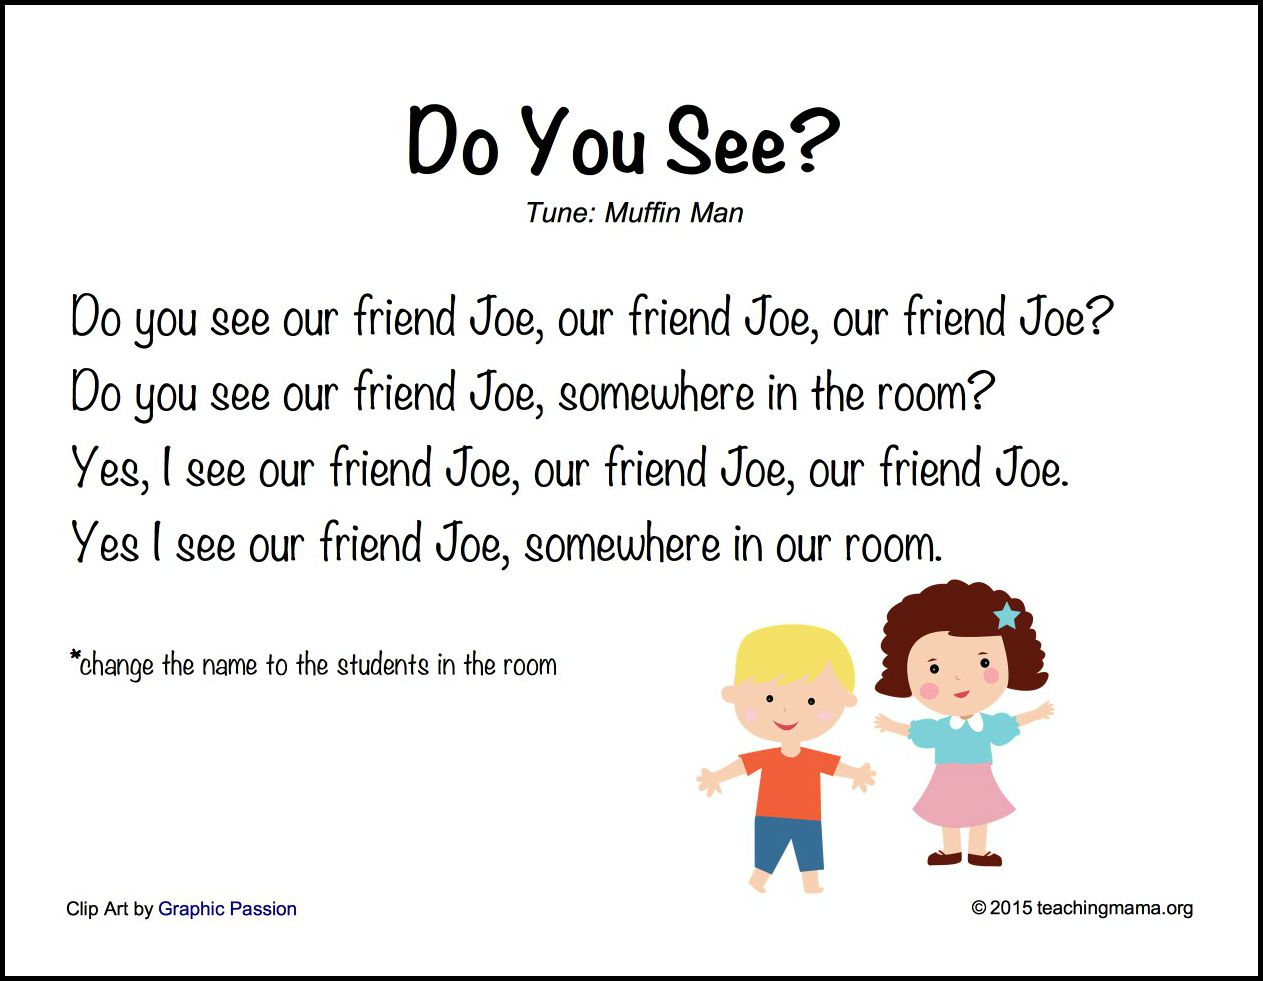 picture about Make New Friends Song Printable referred to as Back again toward Higher education Music for Preschoolers